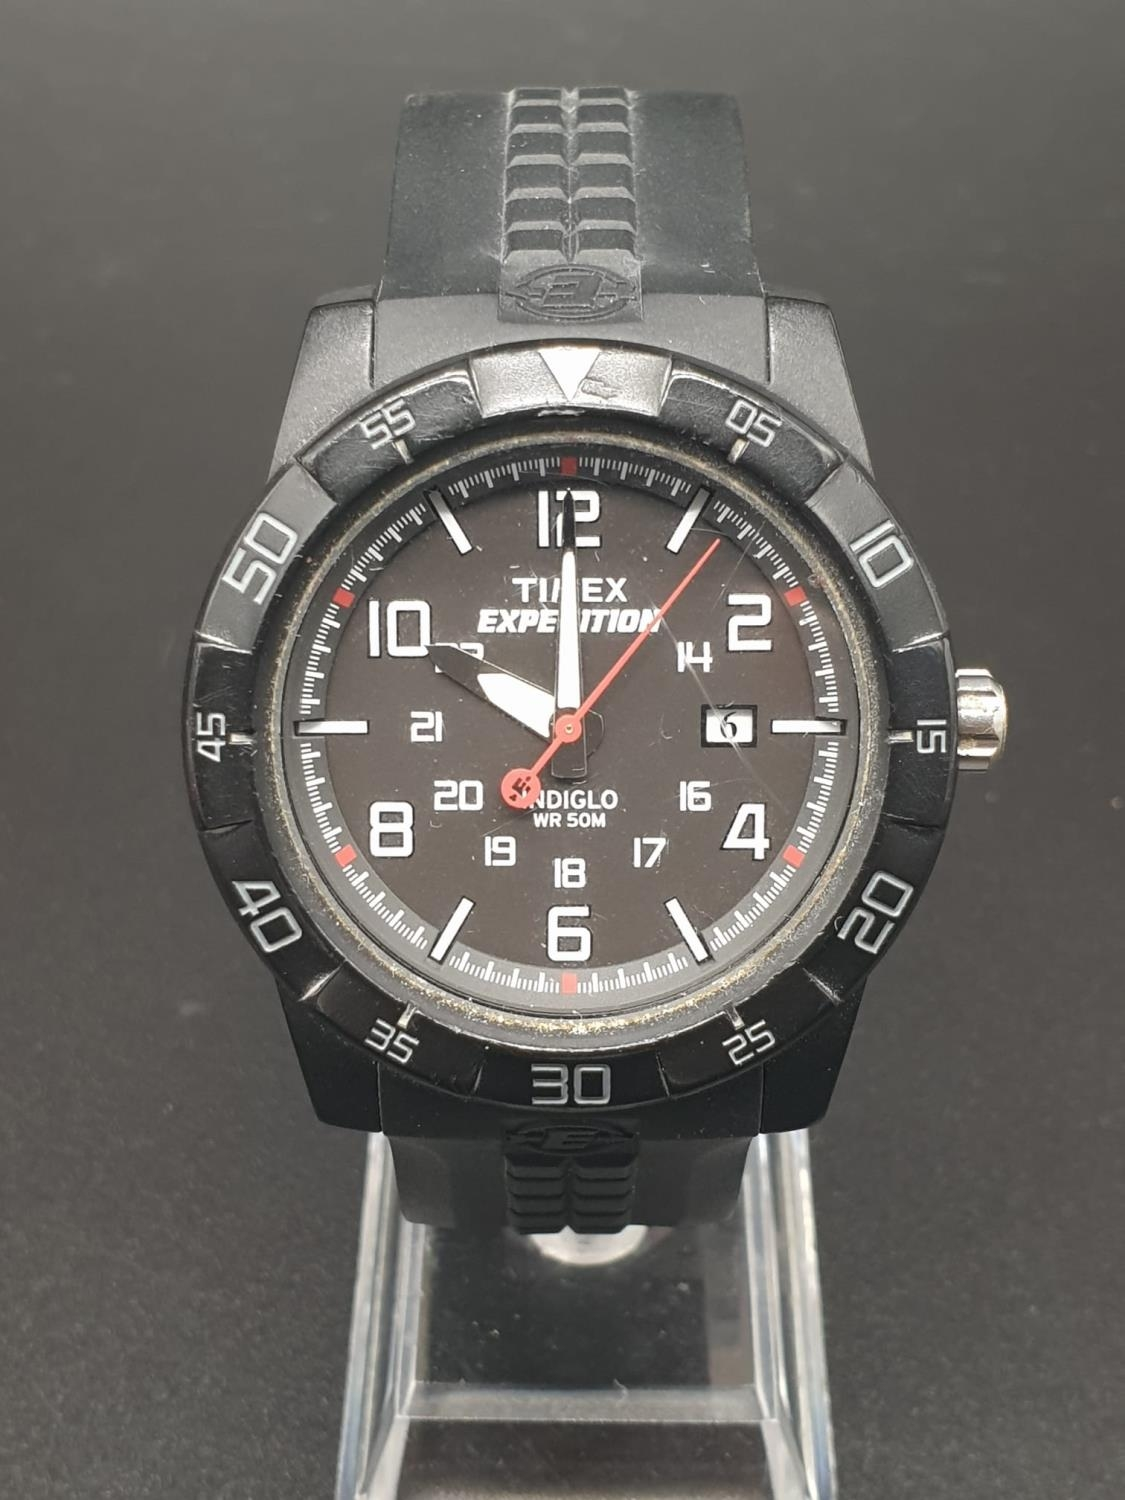 Timex Expedition Watch. Black rubber strap. Black dial. As found.